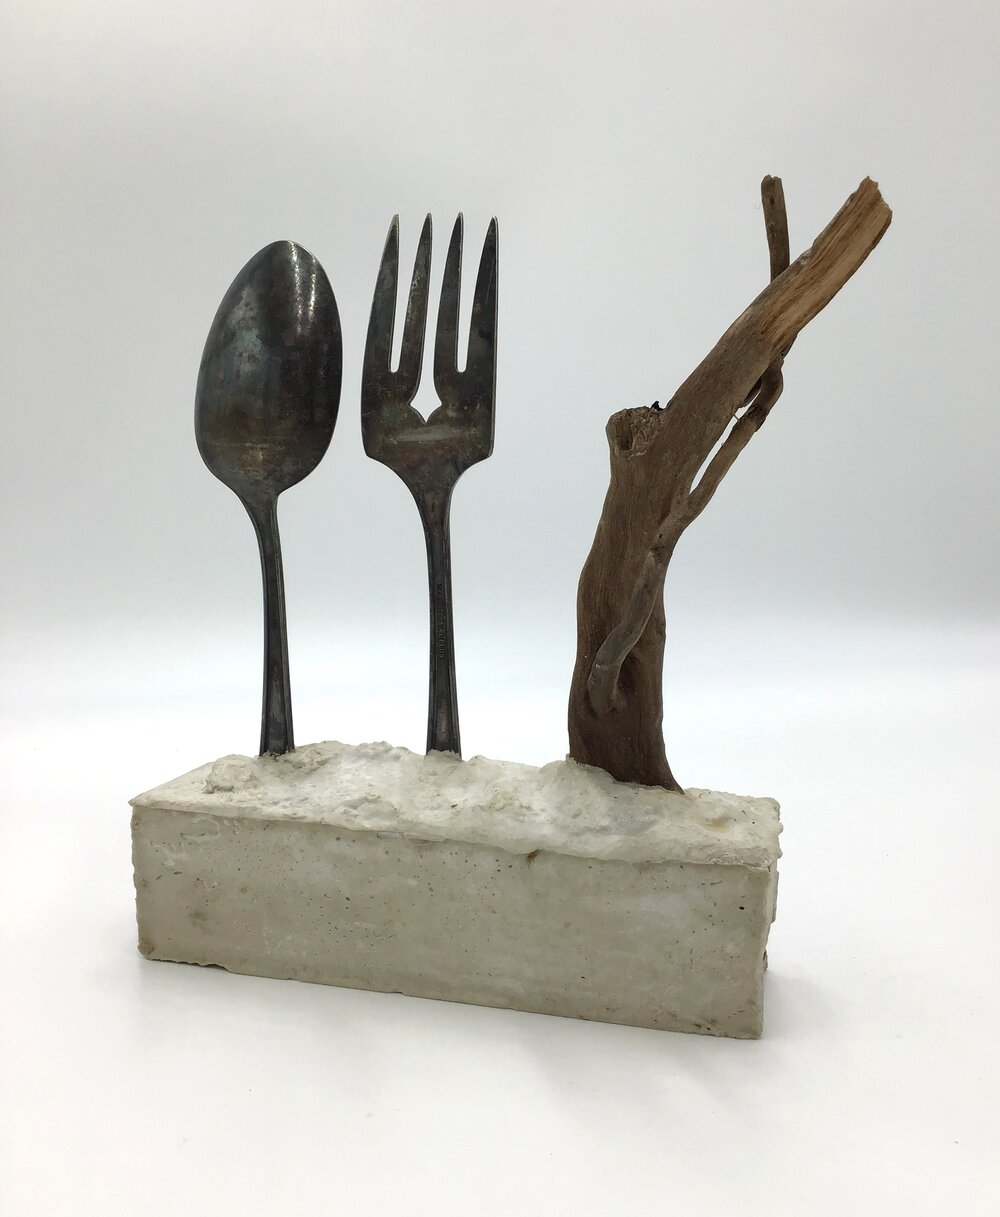 "Dinner Time,  plaster, silver and wood 9.5"" high X 7.5"" long X 2"" wide (2019)"